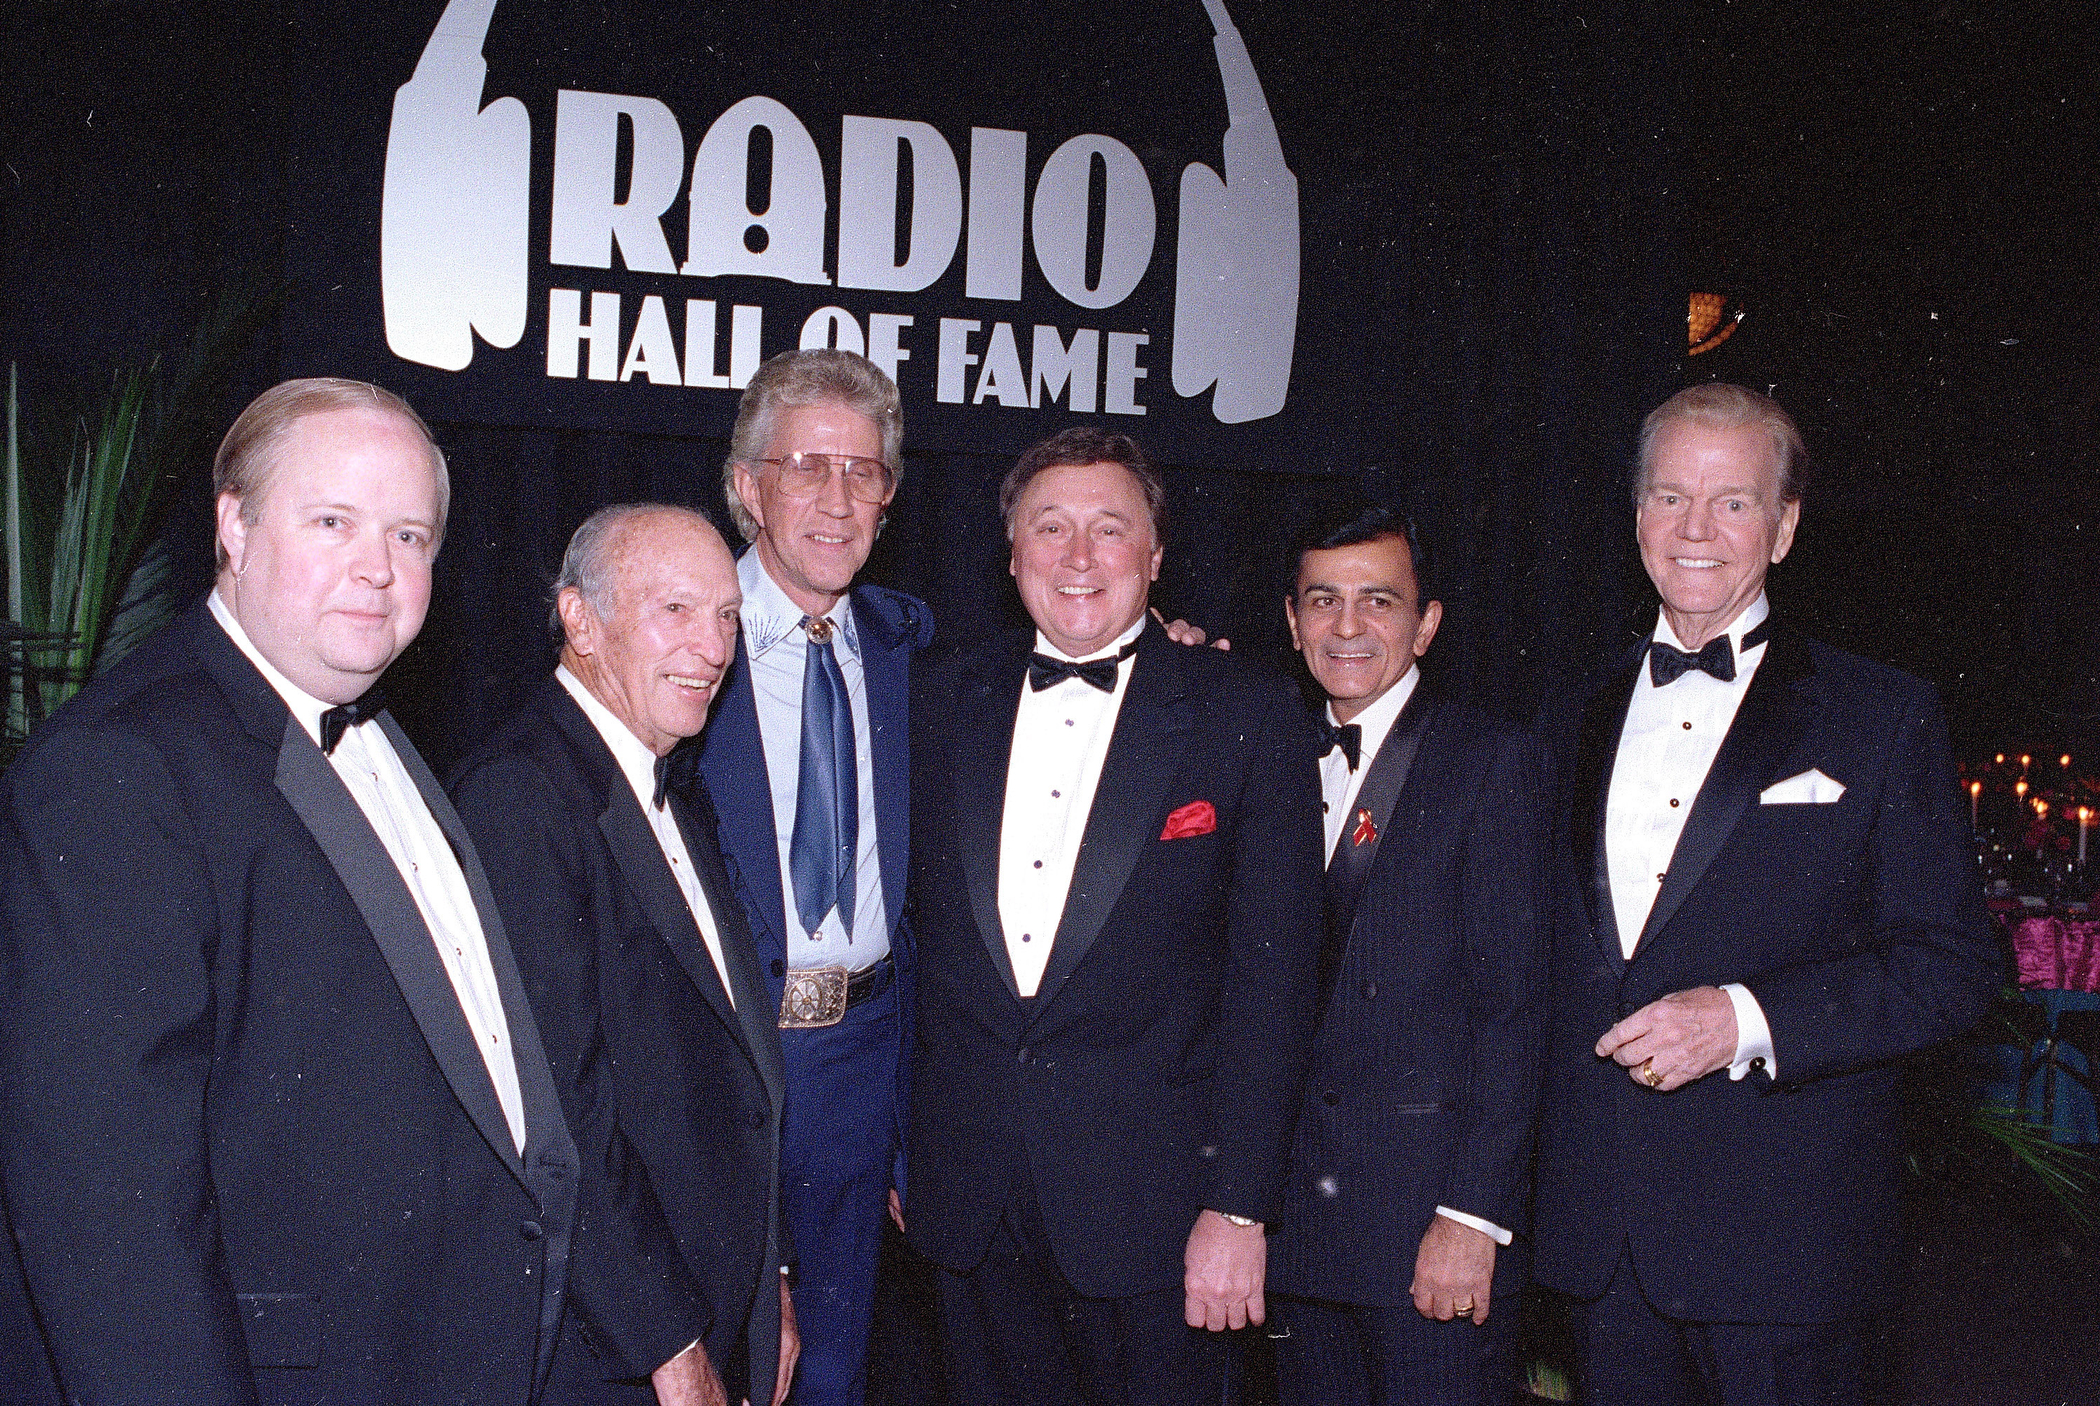 Bruce Dumont, president of the Museum of Broadcast Communication, far left, stands with inductees, from left, ABC radio pioneer Leonard Goldenson, country music's Porter Wagoner, Detroit radio personality J.P. McCarthy, and  Top 40  host Casey Kasem, into the museum's Hall of Fame in Chicago, Ill. Nov. 15, 1992.